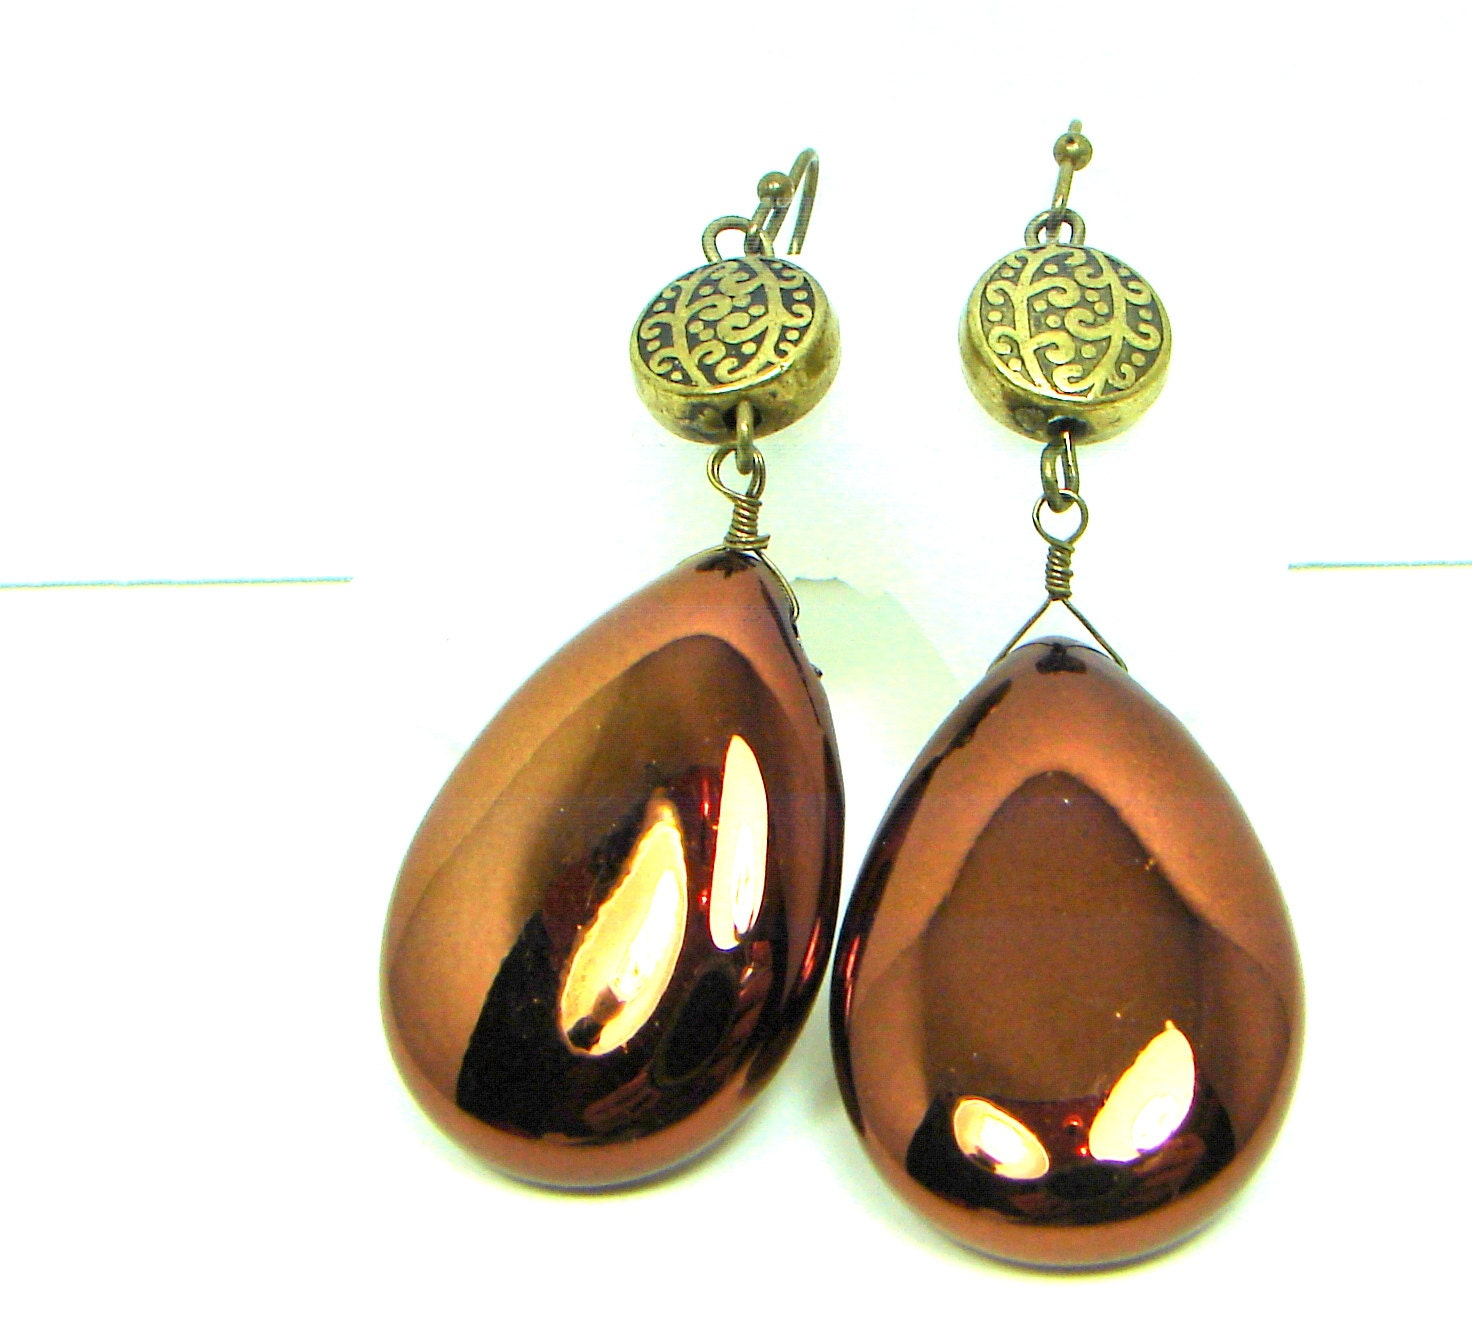 Copper Gold Earrings, Teardrop Earrings, Bronze Earrings, Large, Lightweight - jillsgems1